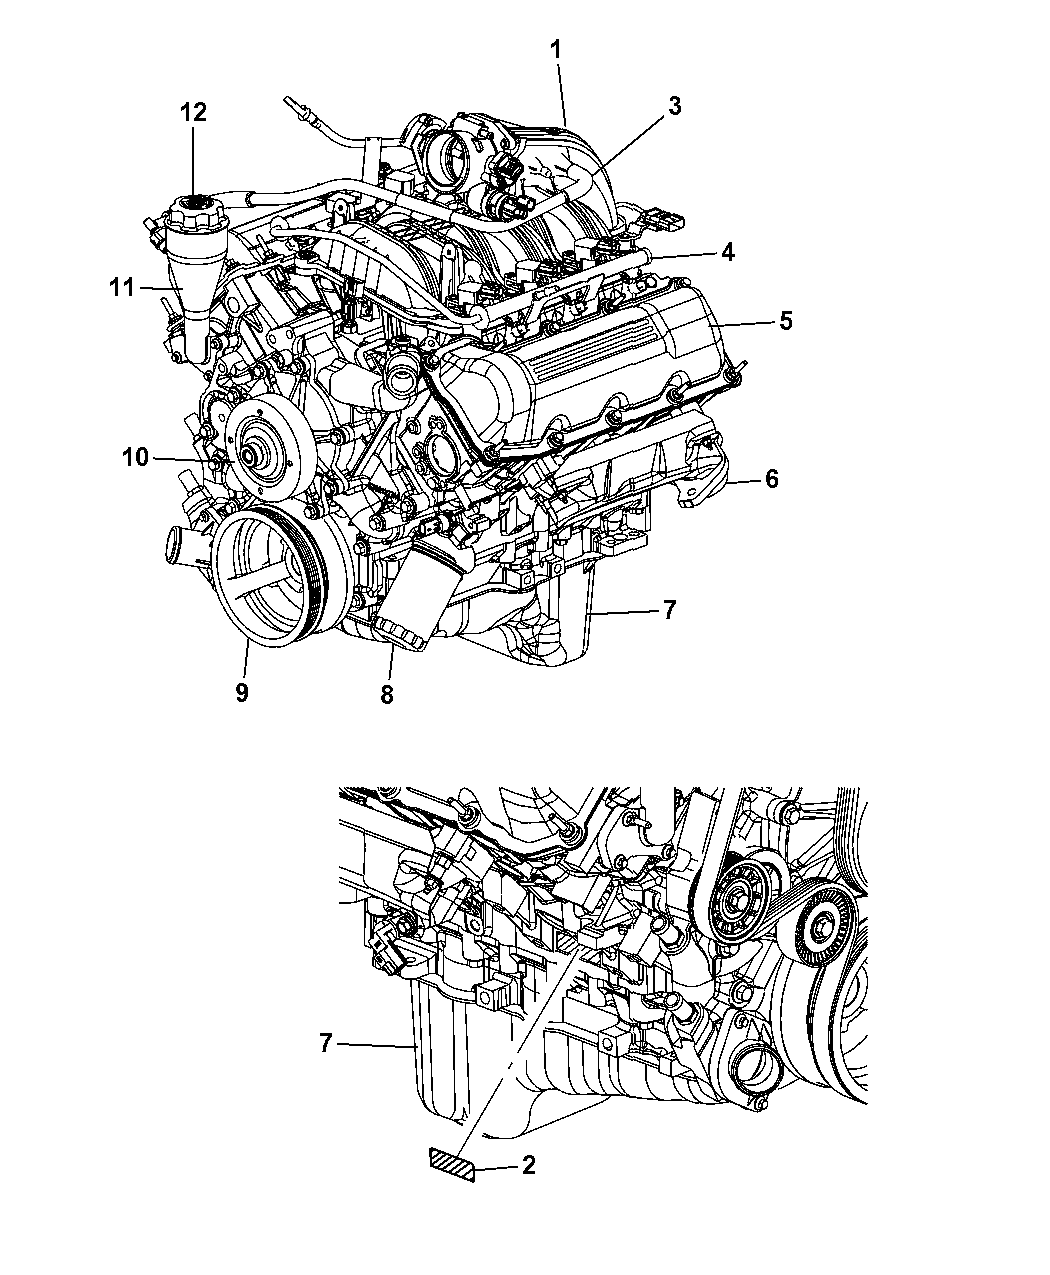 2007 jeep commander engine assembly and identification